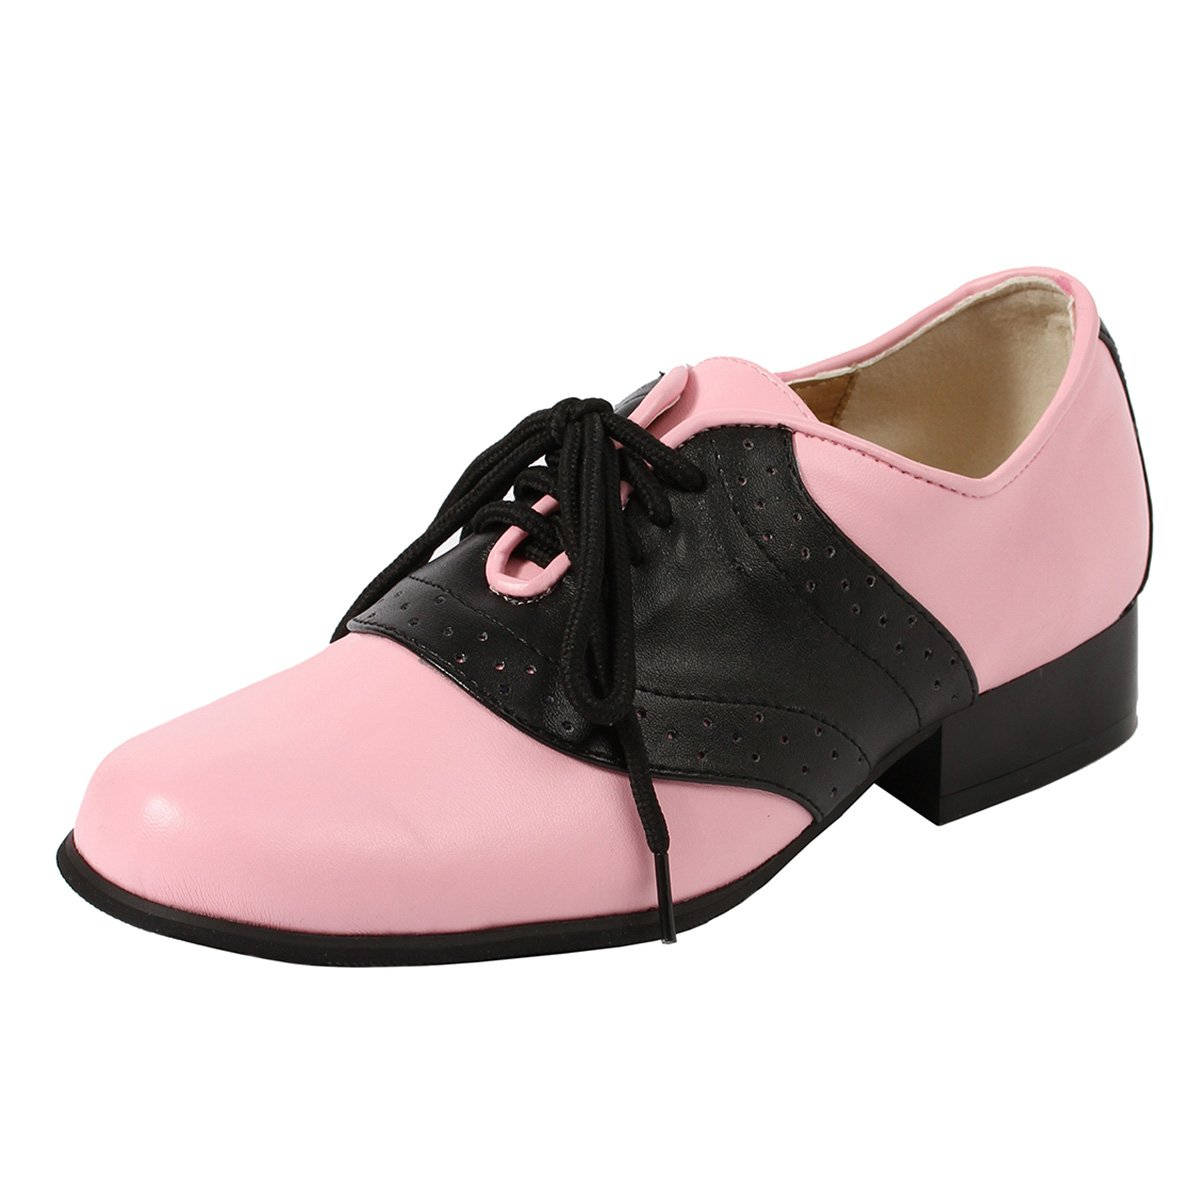 Women's Oxford Saddle Shoes 1 inch Heel Lace up with Twotone Pink Black Size: 10 by Summitfashions